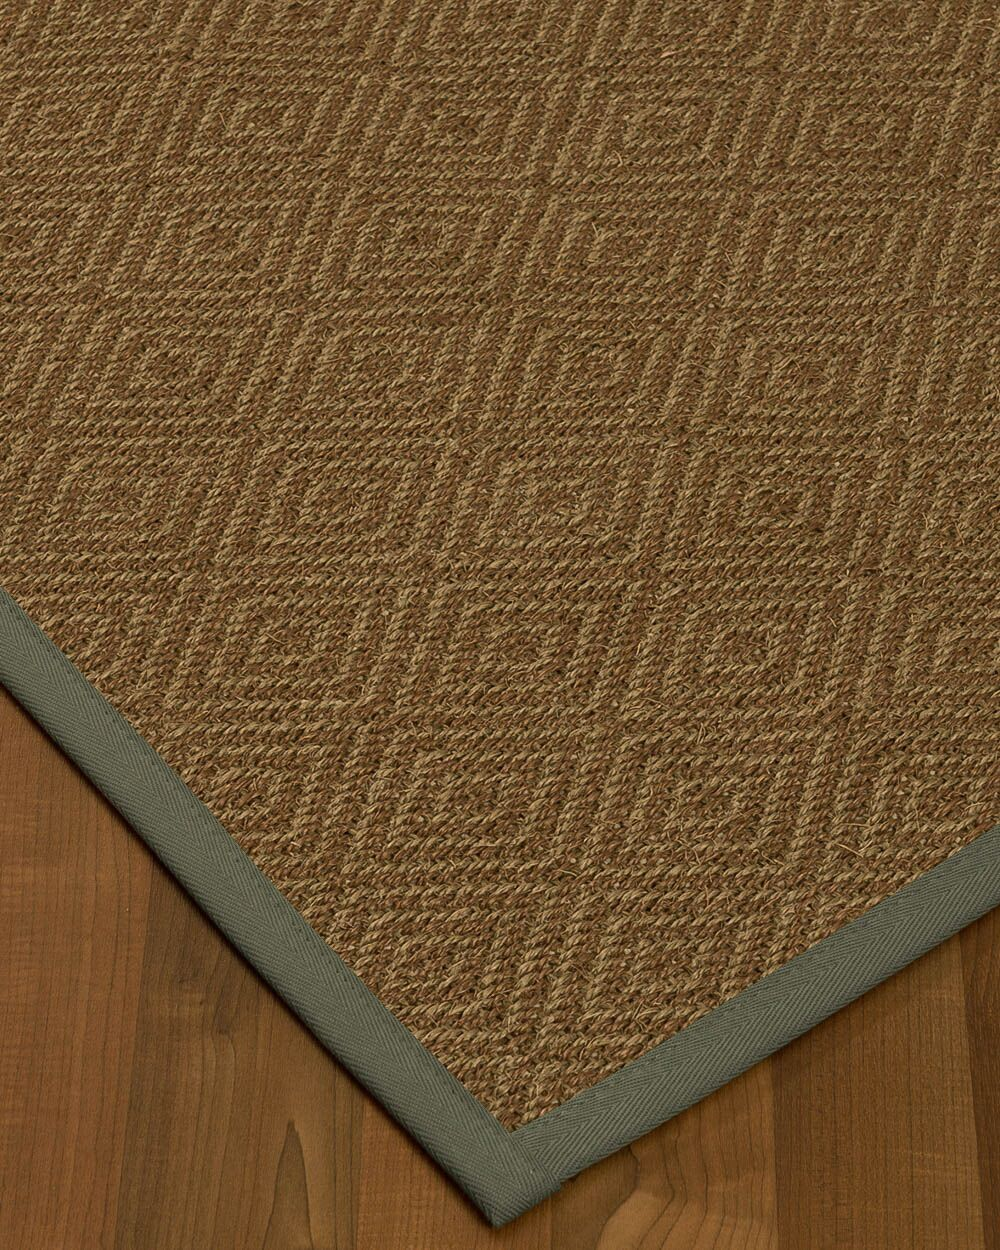 Magnuson Border Hand-Woven Brown Area Rug Rug Pad Included: No, Rug Size: Rectangle 3' x 5'